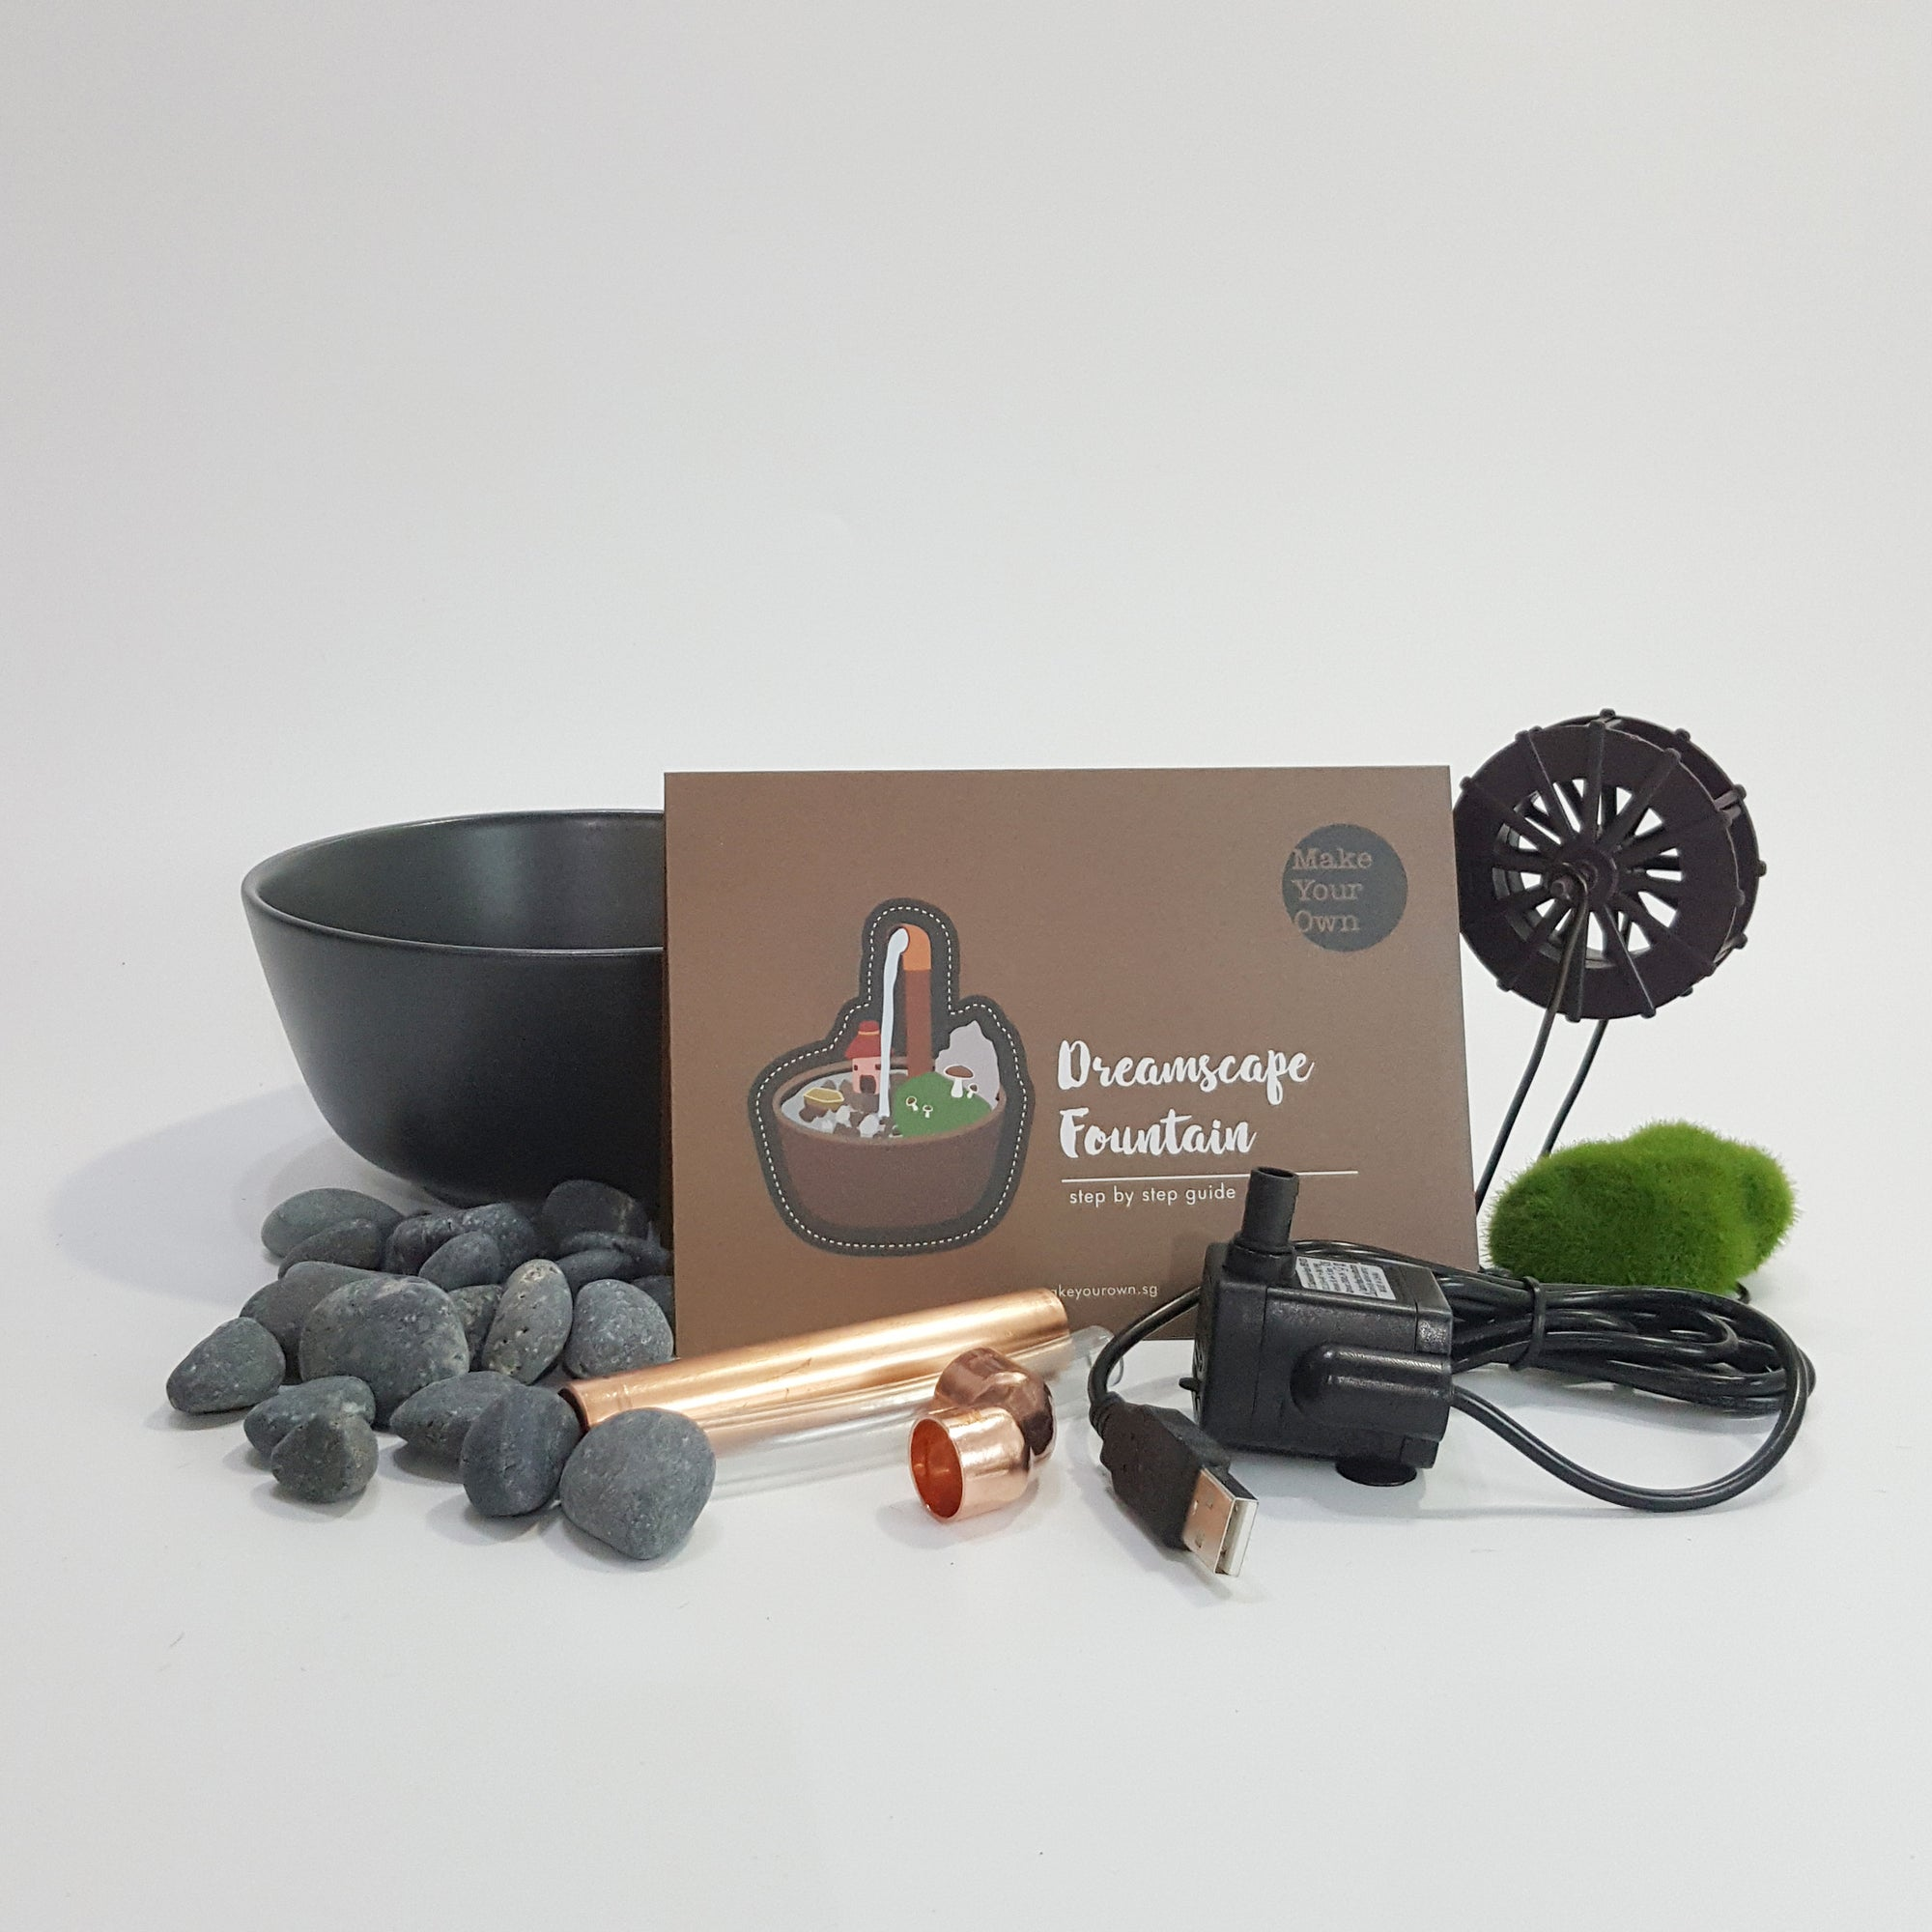 Dreamscape Fountain DIY kit